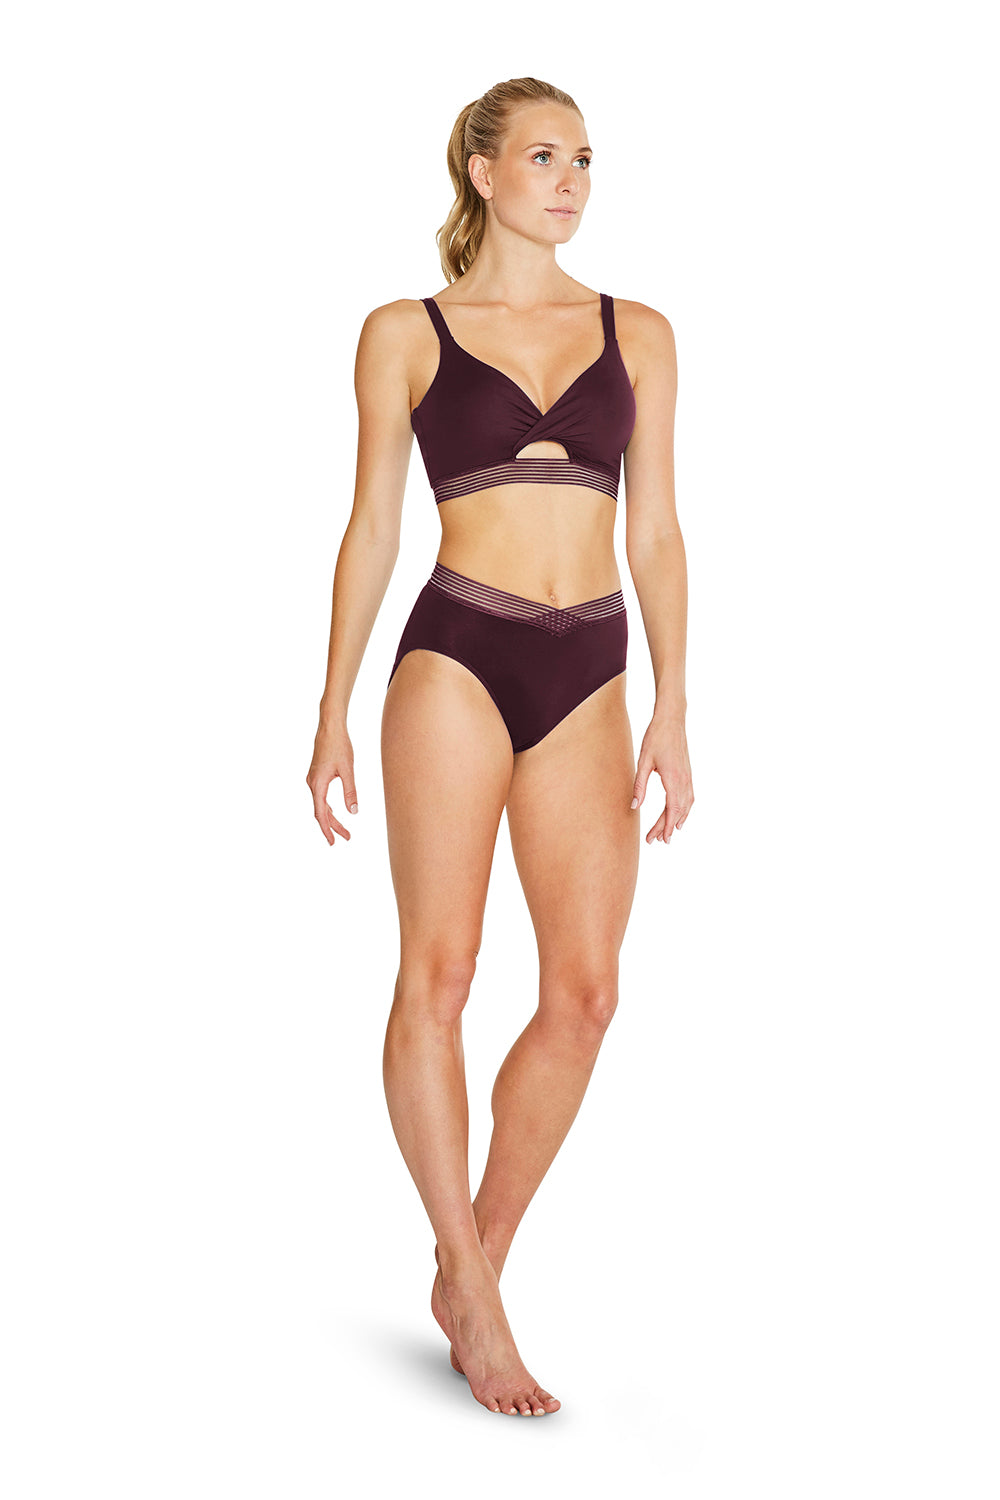 Ladies V High Waisted Brief - BLOCH US